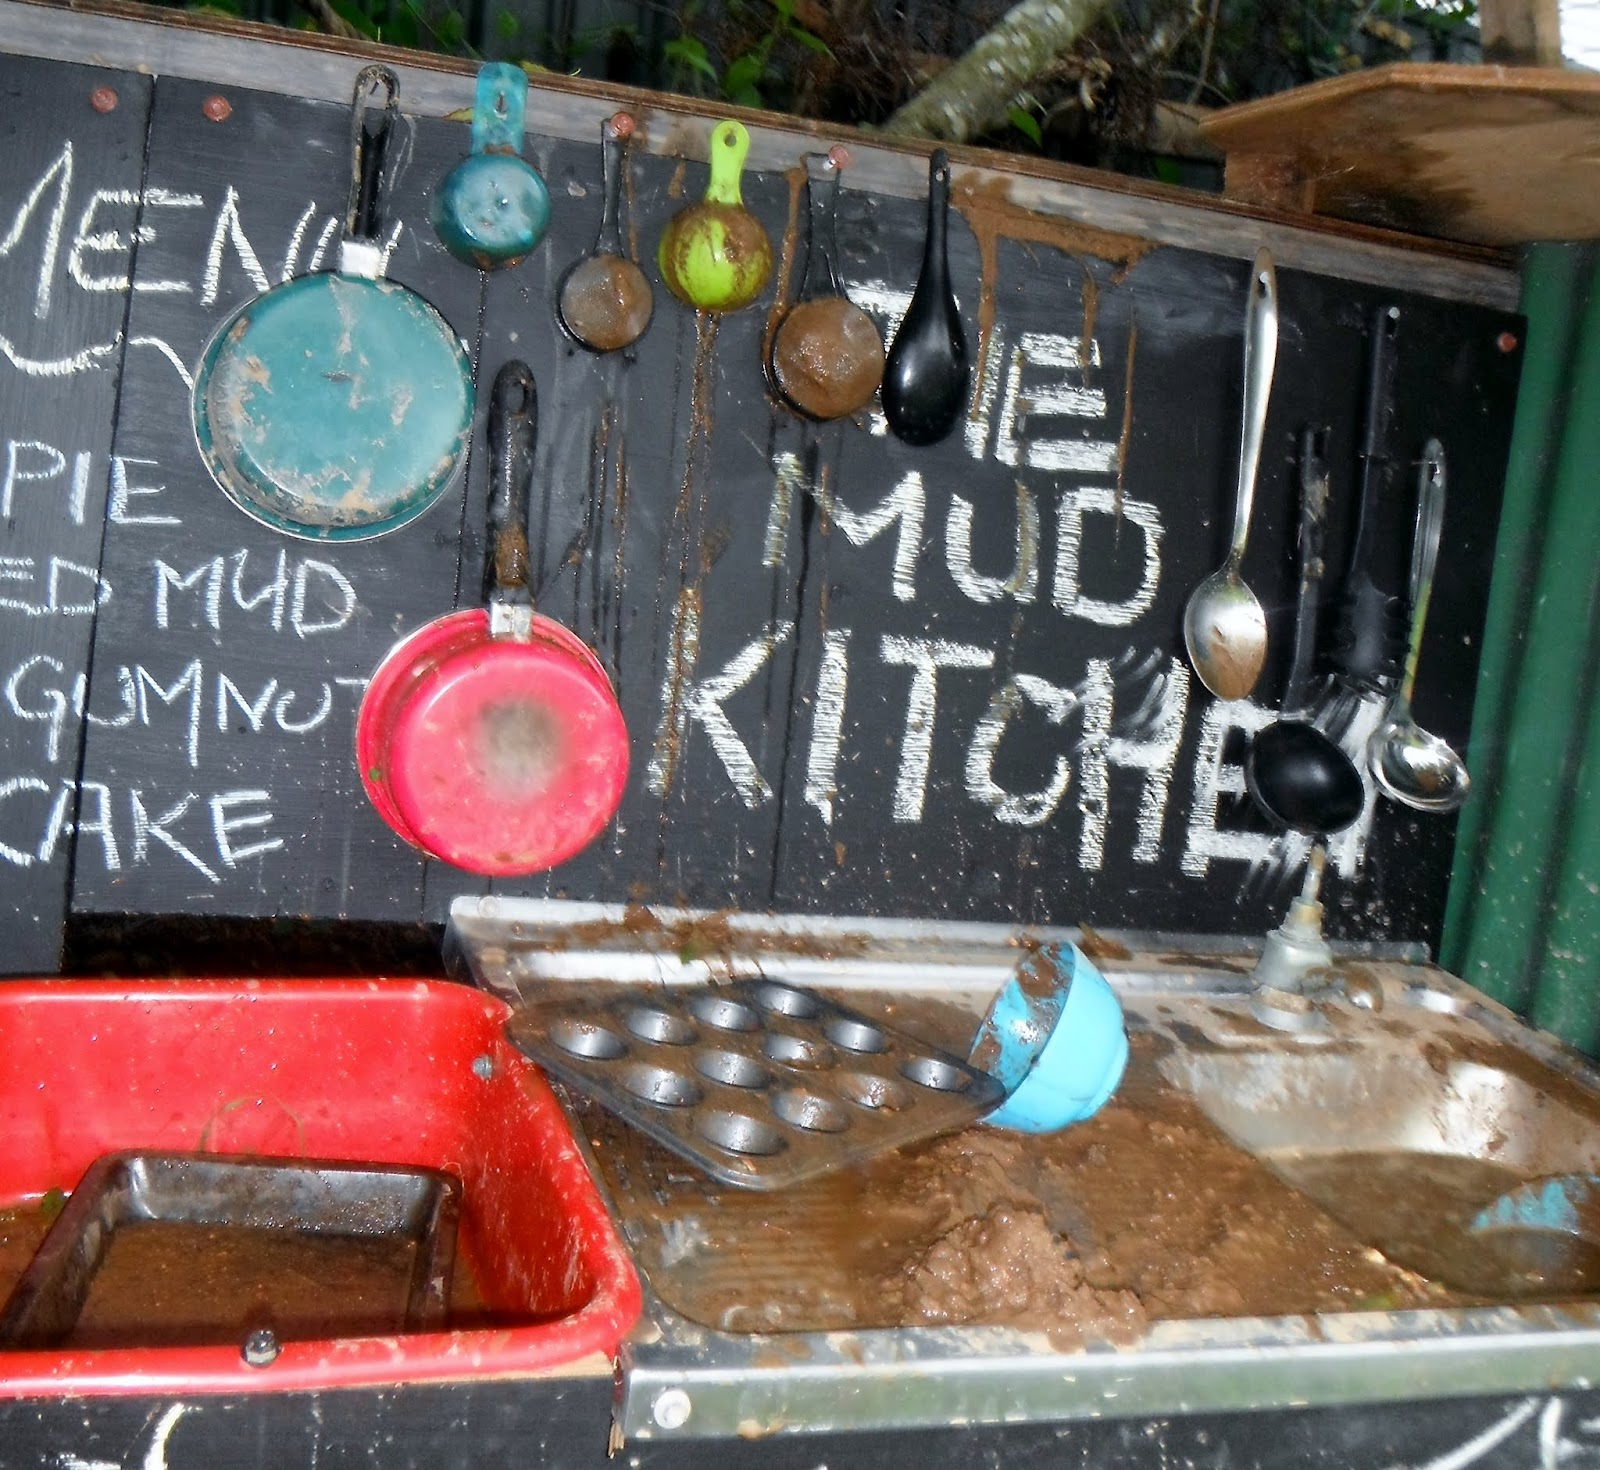 Messy Kitchen After Cooking: Adventures At Home With Mum: 8 Benefits Of Playing In The MUD